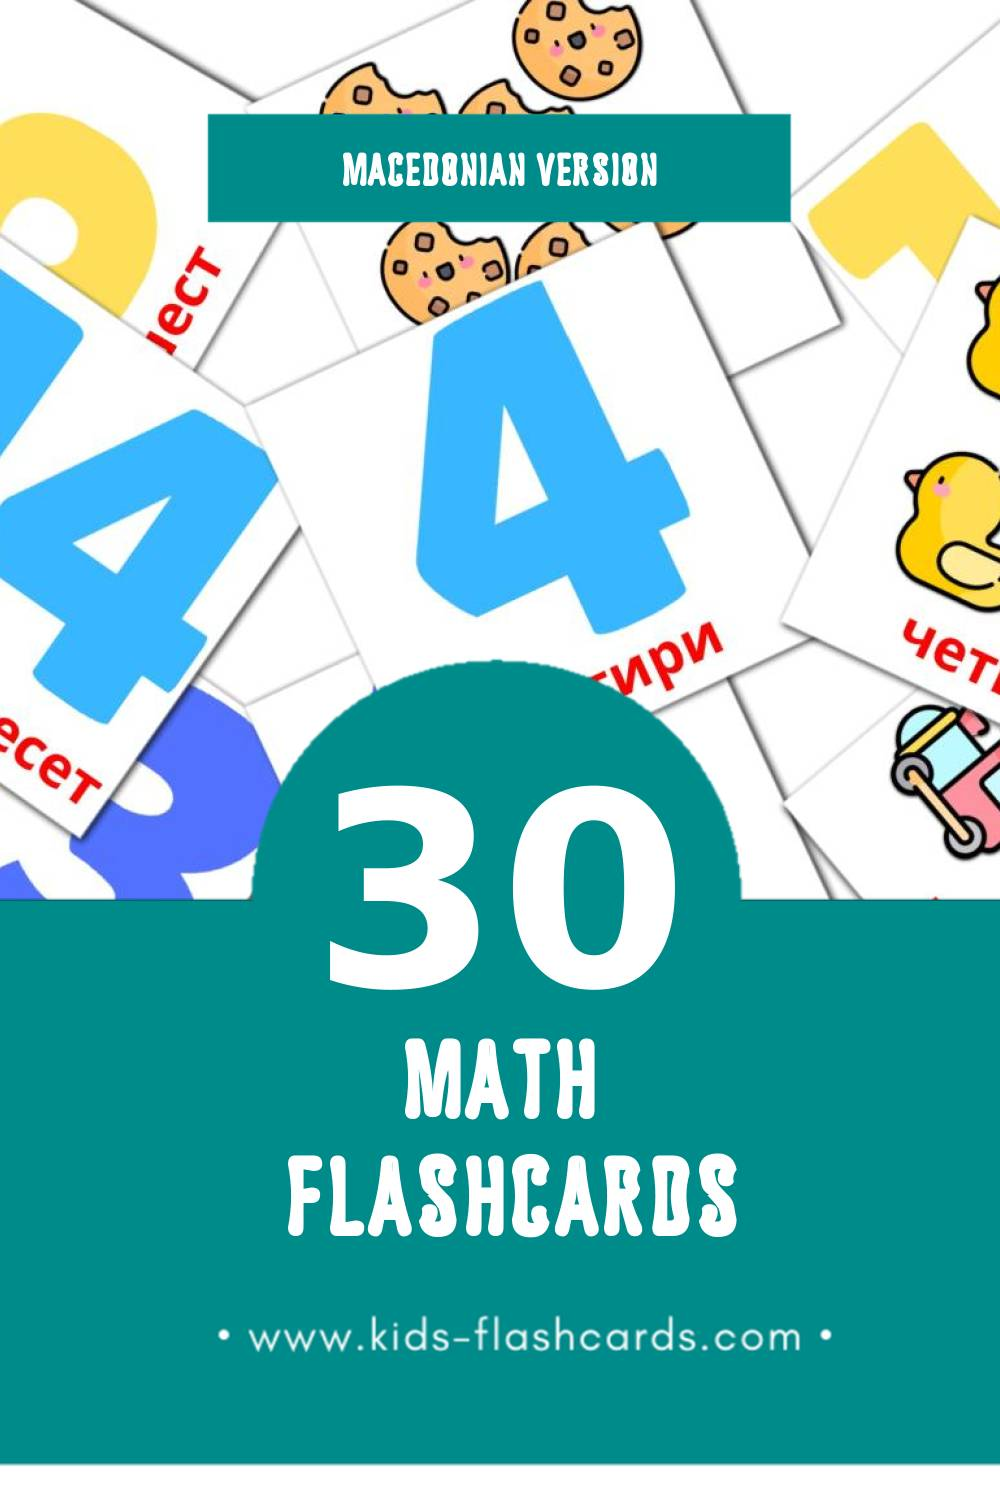 Visual Математика Flashcards for Toddlers (30 cards in Macedonian)